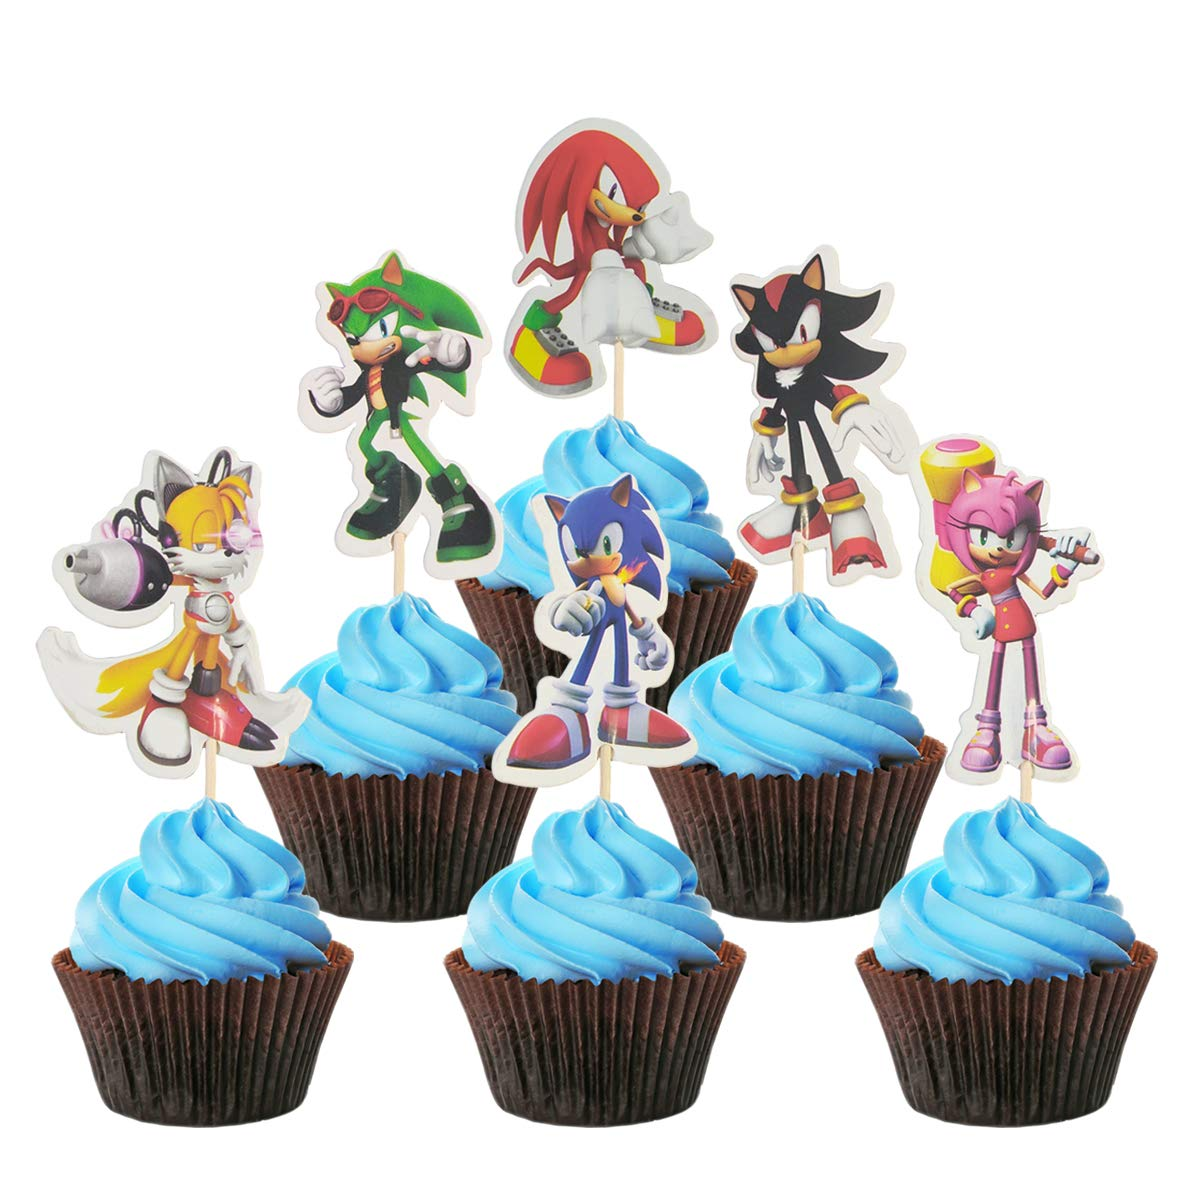 Sonic The Hedgehog Cake Topper For Children S Birthday Party Cake Decoration For Baby Shower Sonic The Hedgehog 48pcs Amazon Com Grocery Gourmet Food